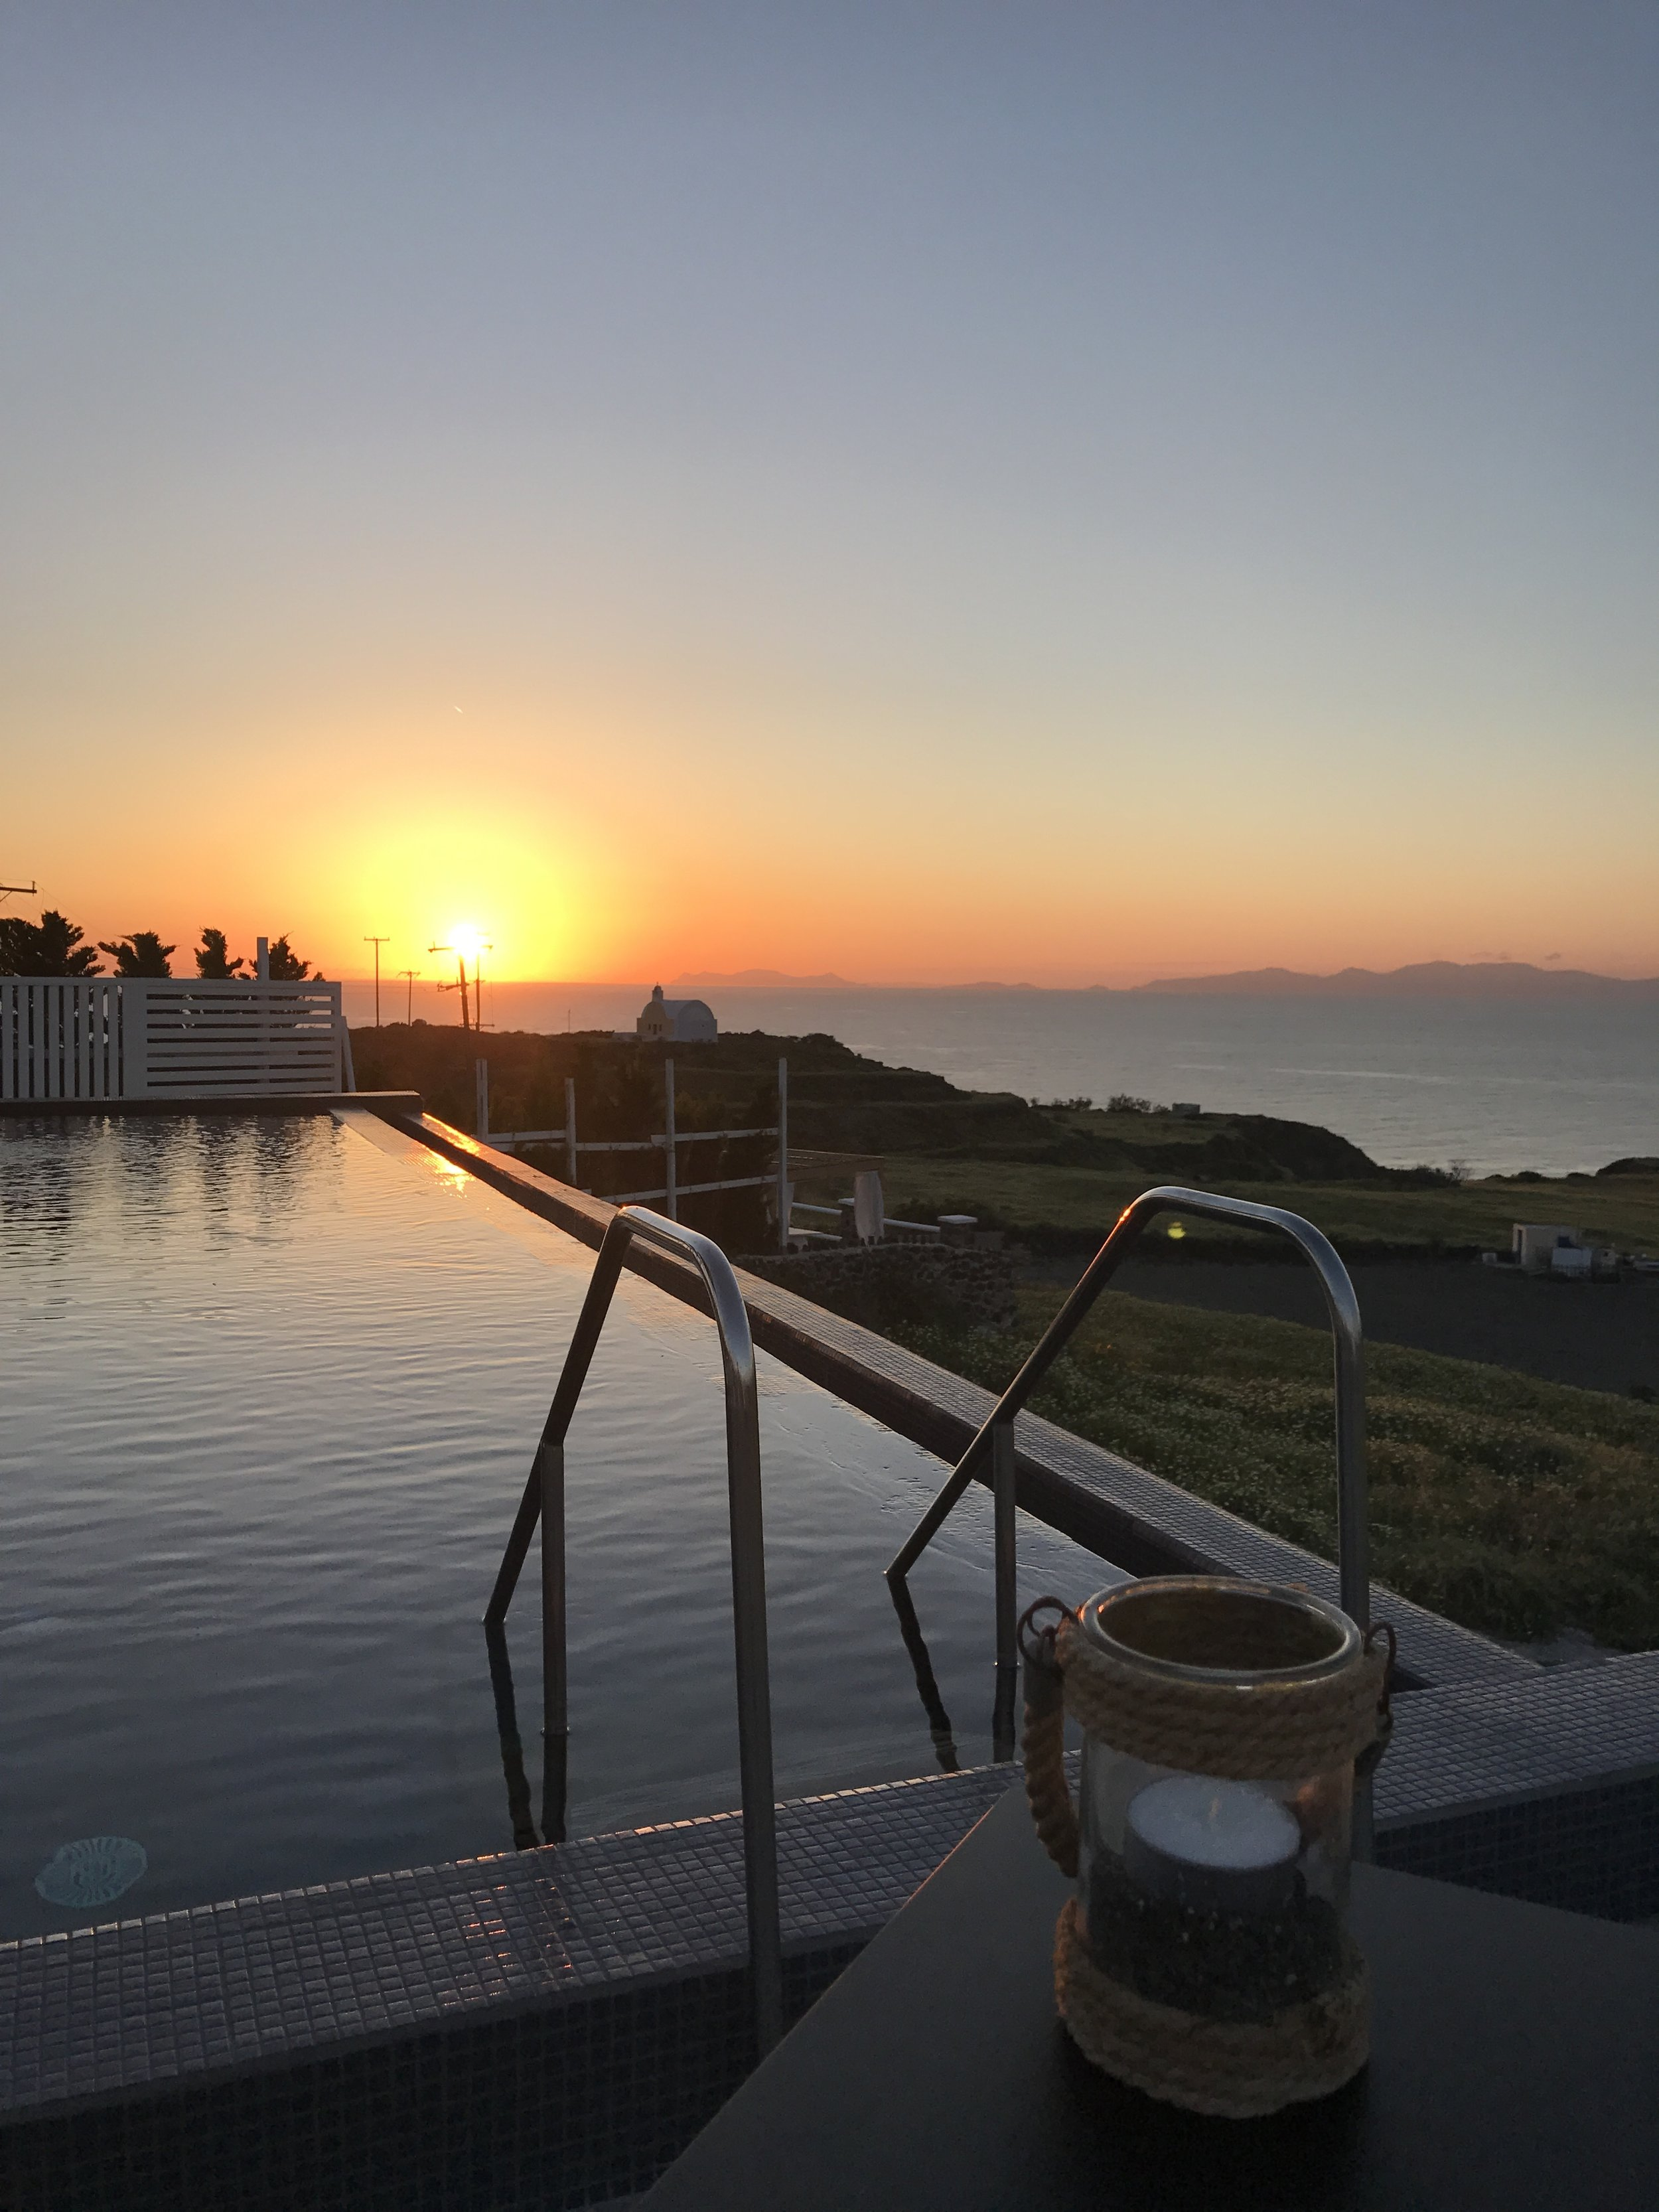 the unforgettable sunset view from the resort